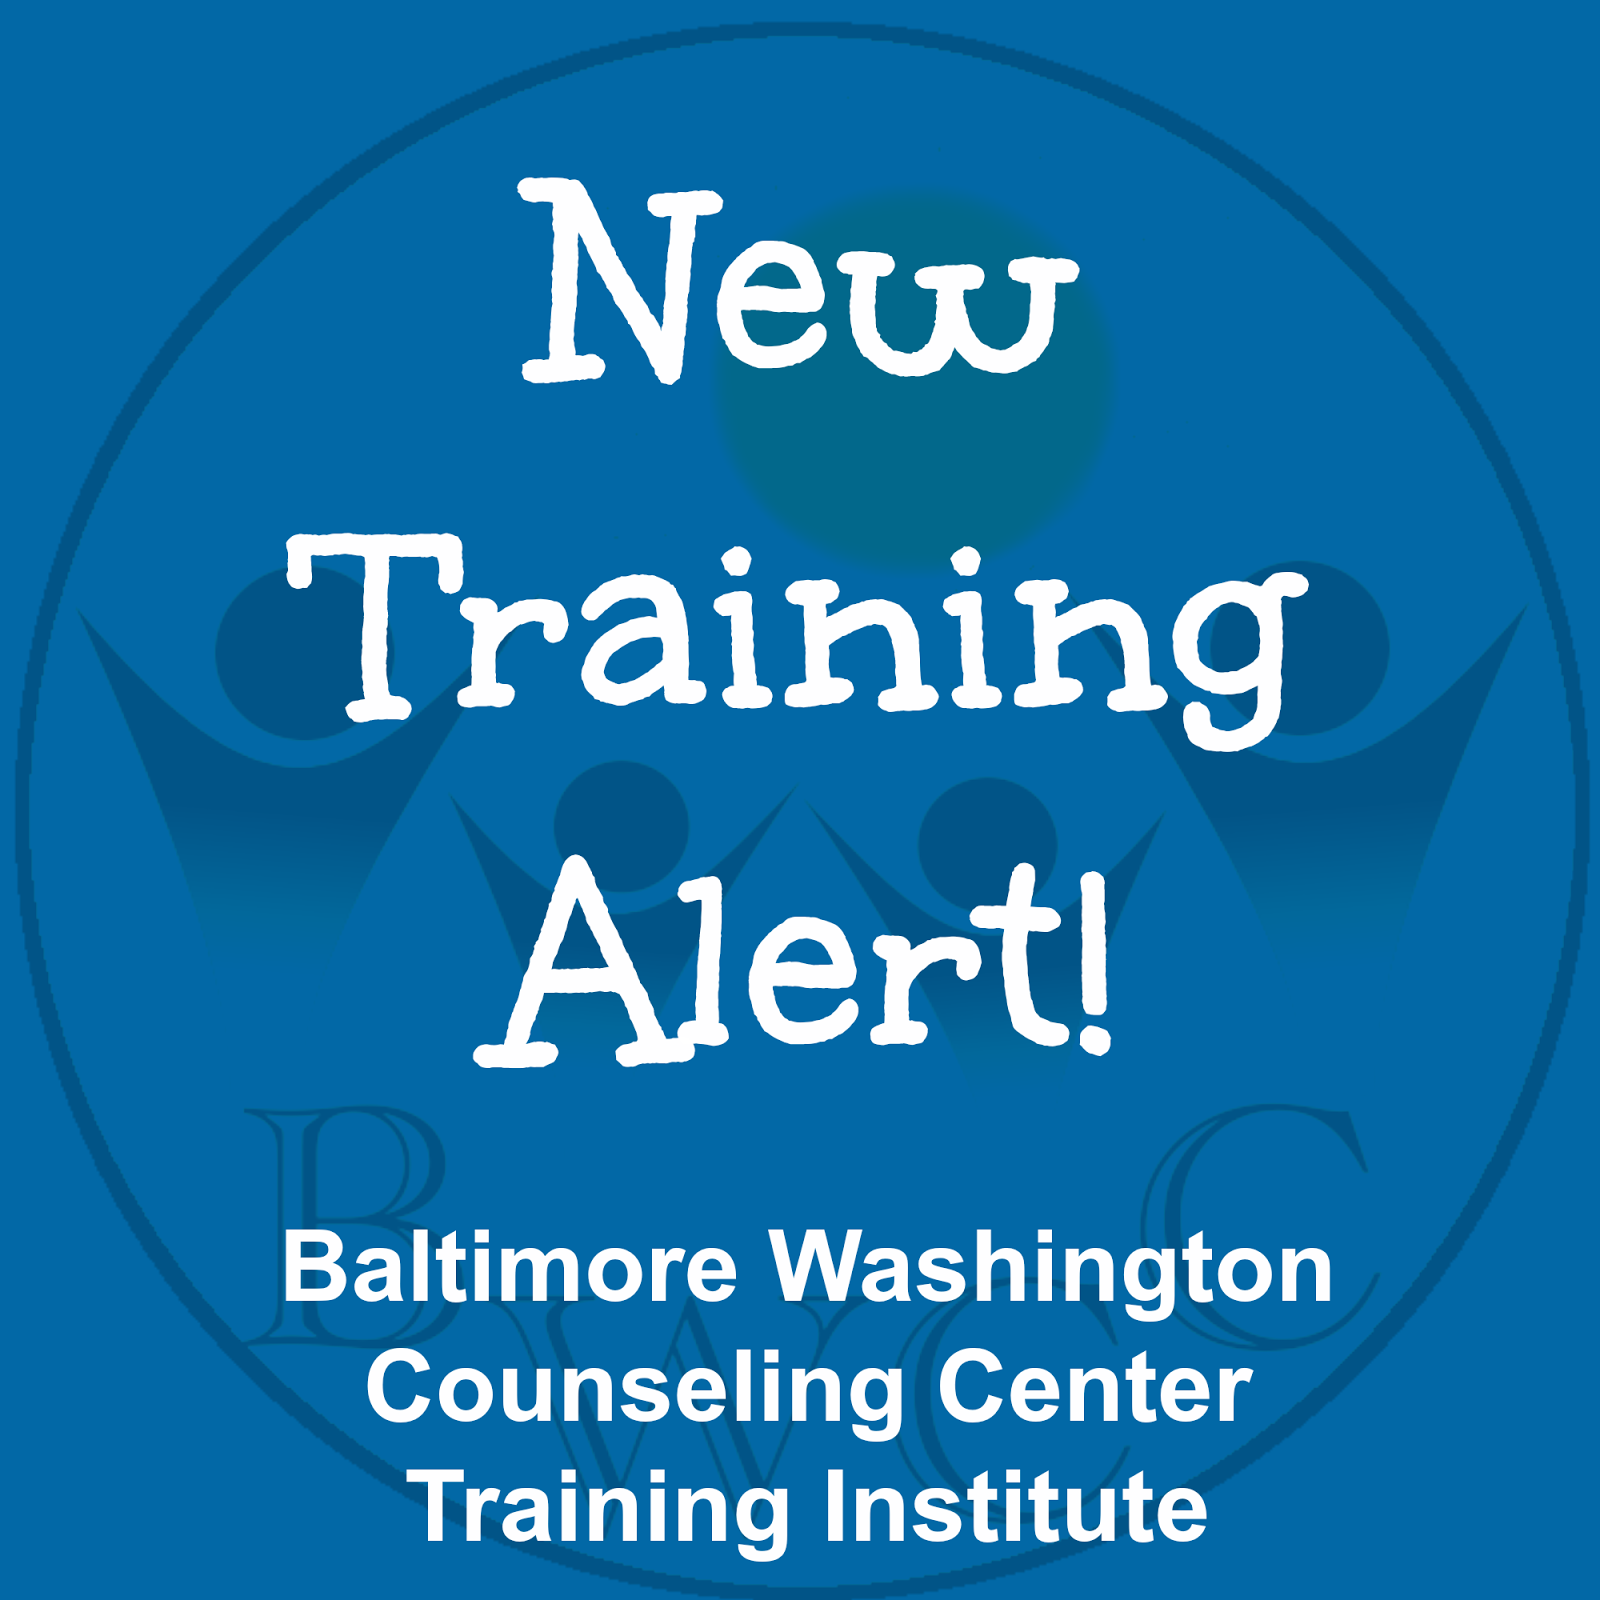 {Training Institute} Ethics and HIV CEU Course: April 24, 2015 in Millersville, MD